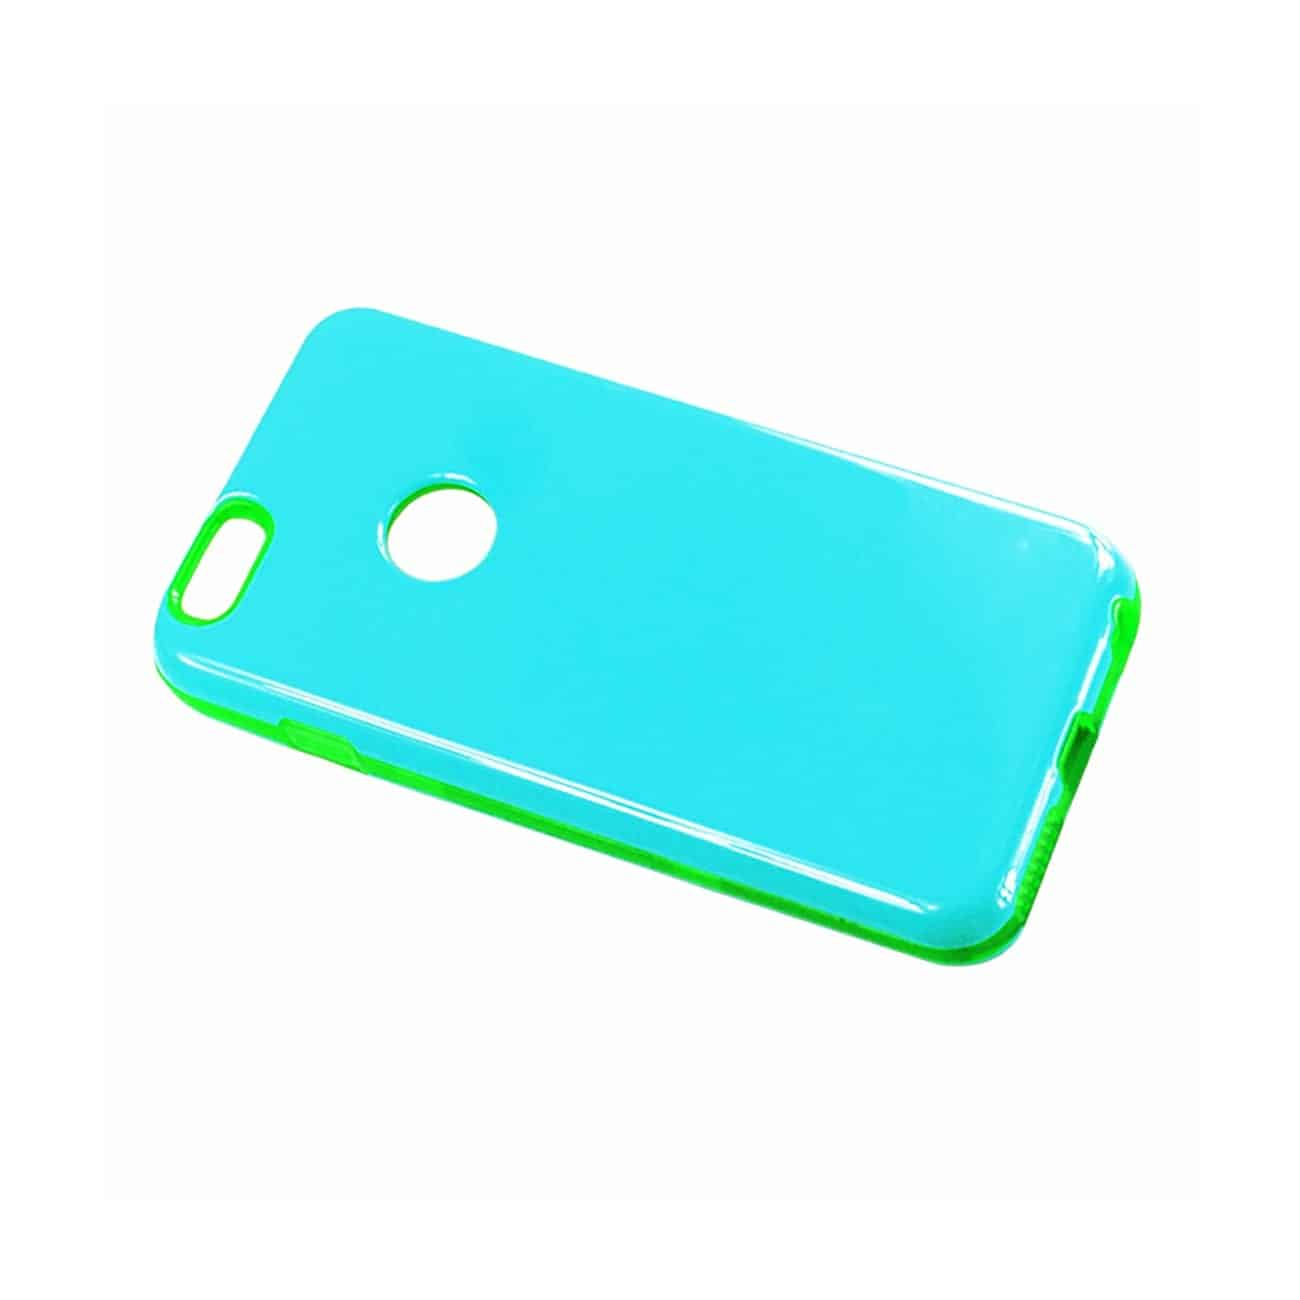 IPHONE 6 PLUS SLIM ARMOR CANDY SHIELD CASE IN BLUE